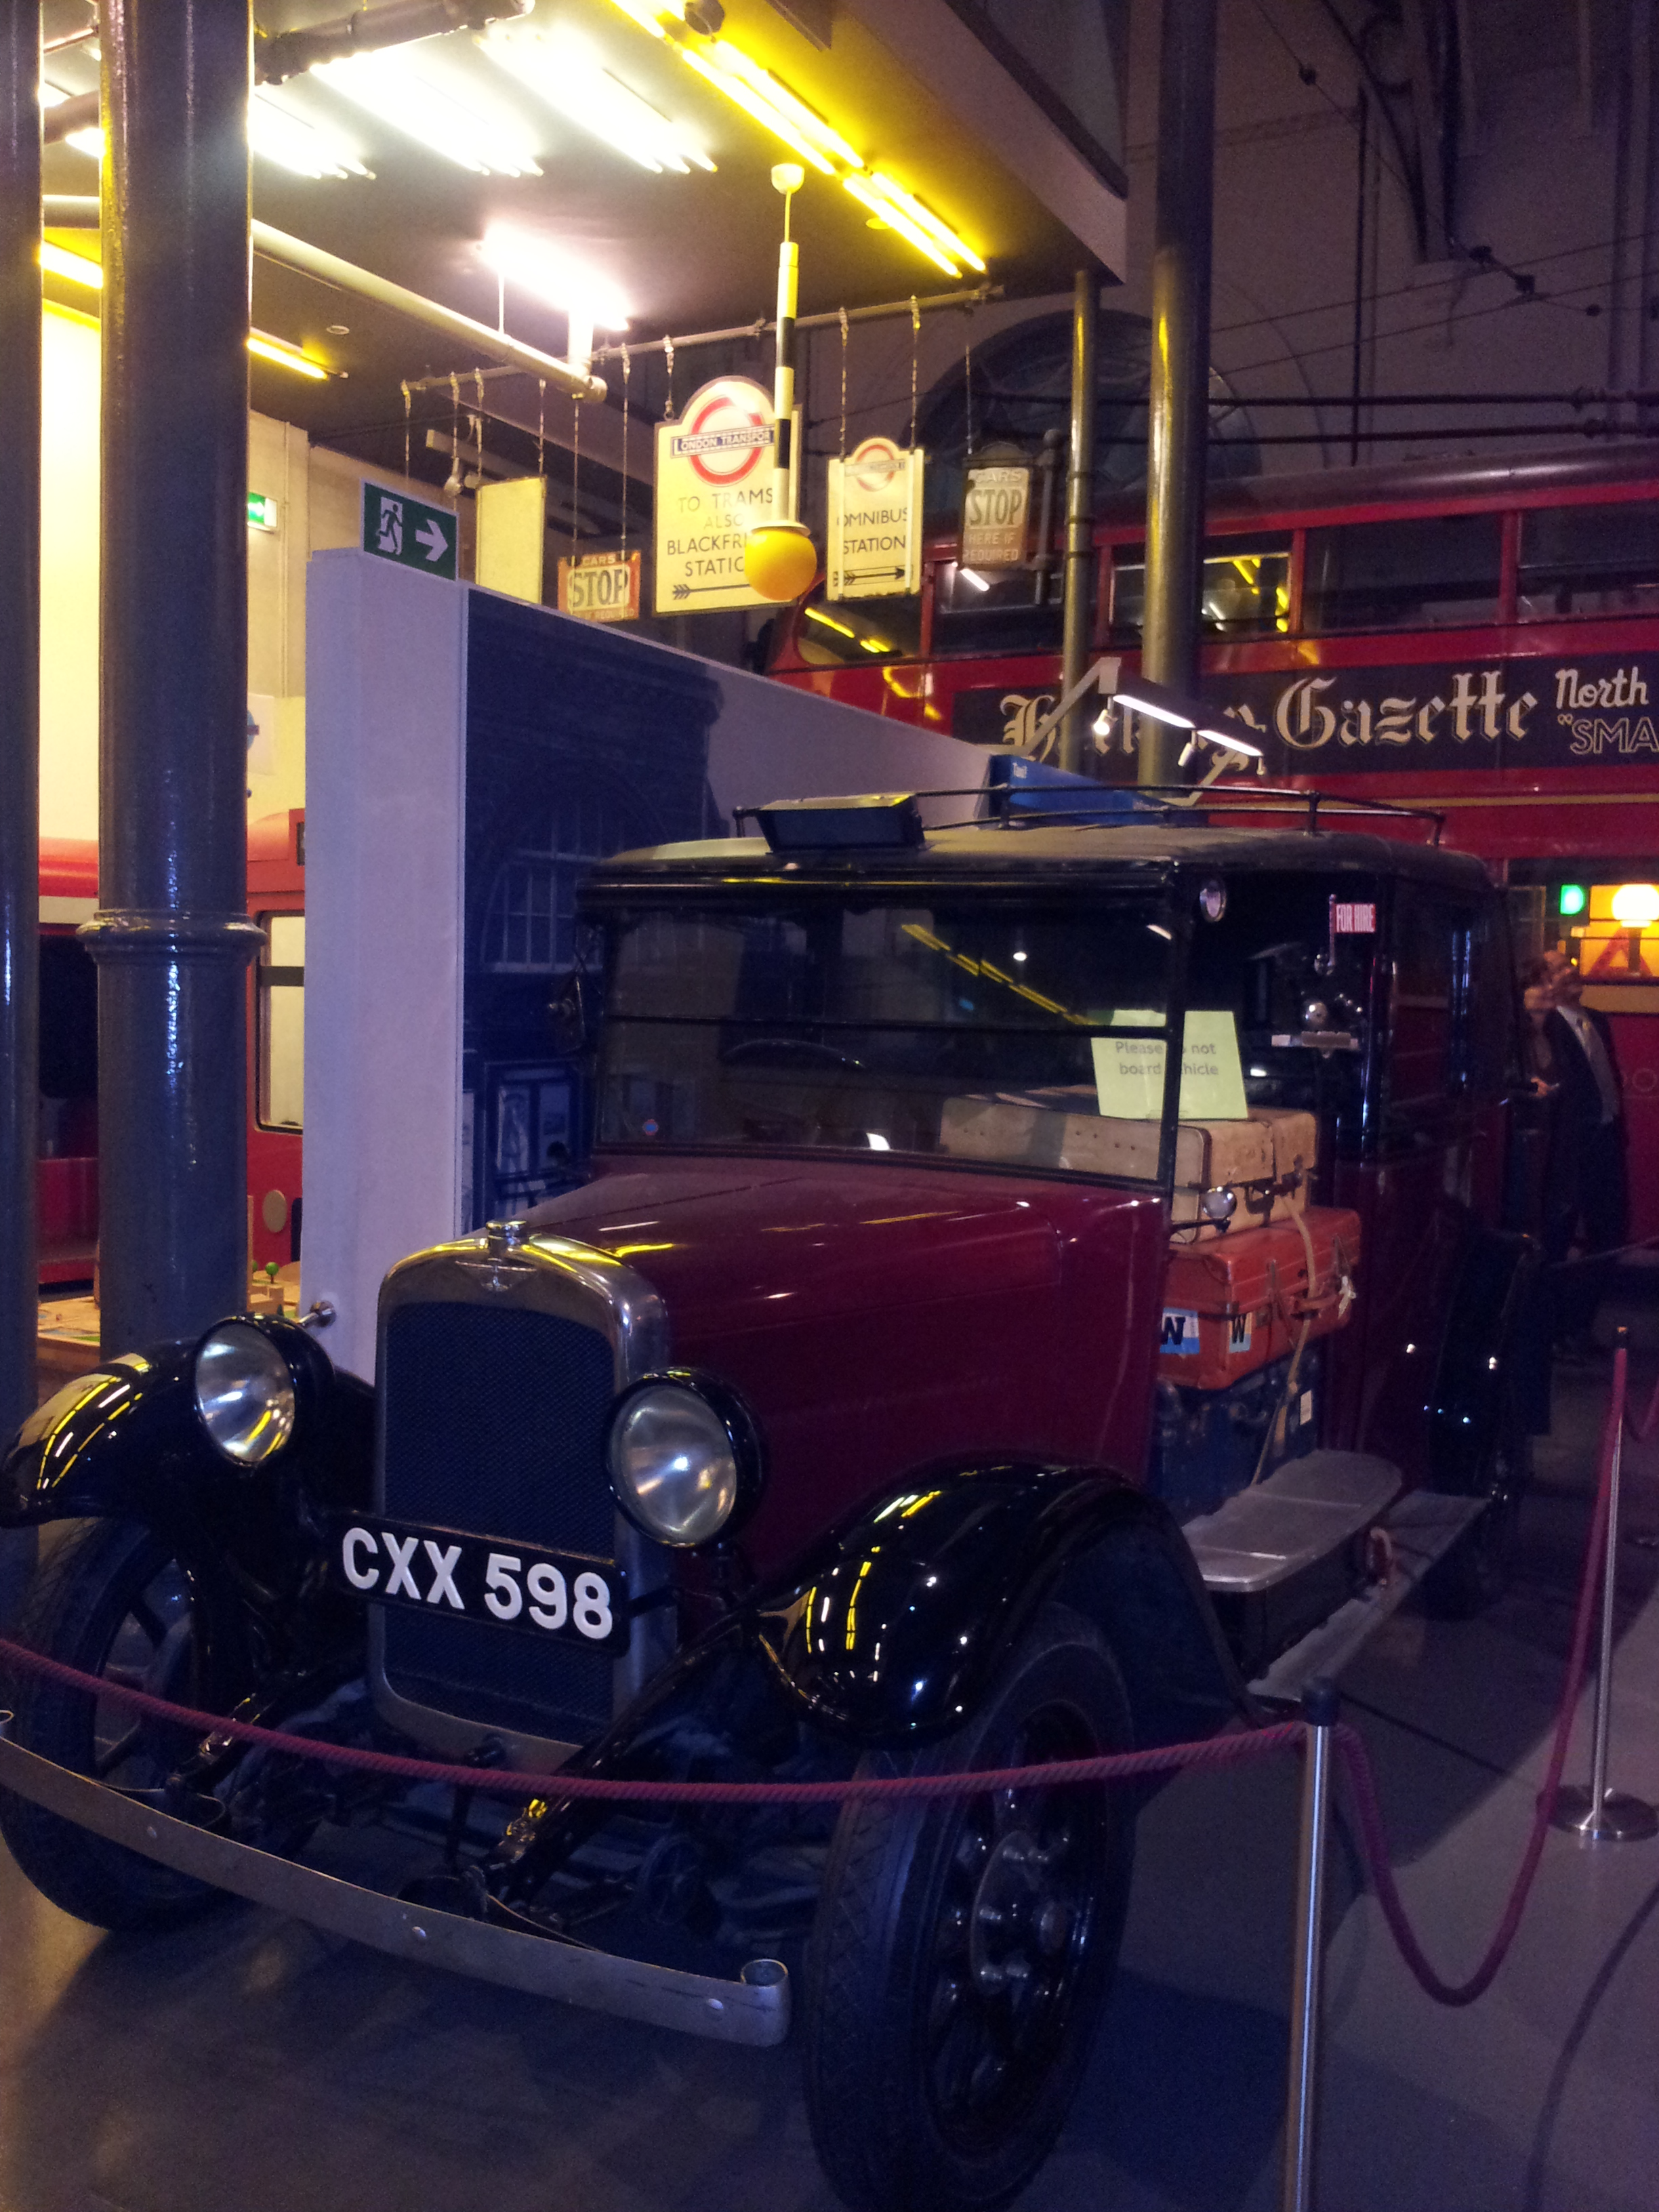 Night at the Museum in London - taxi